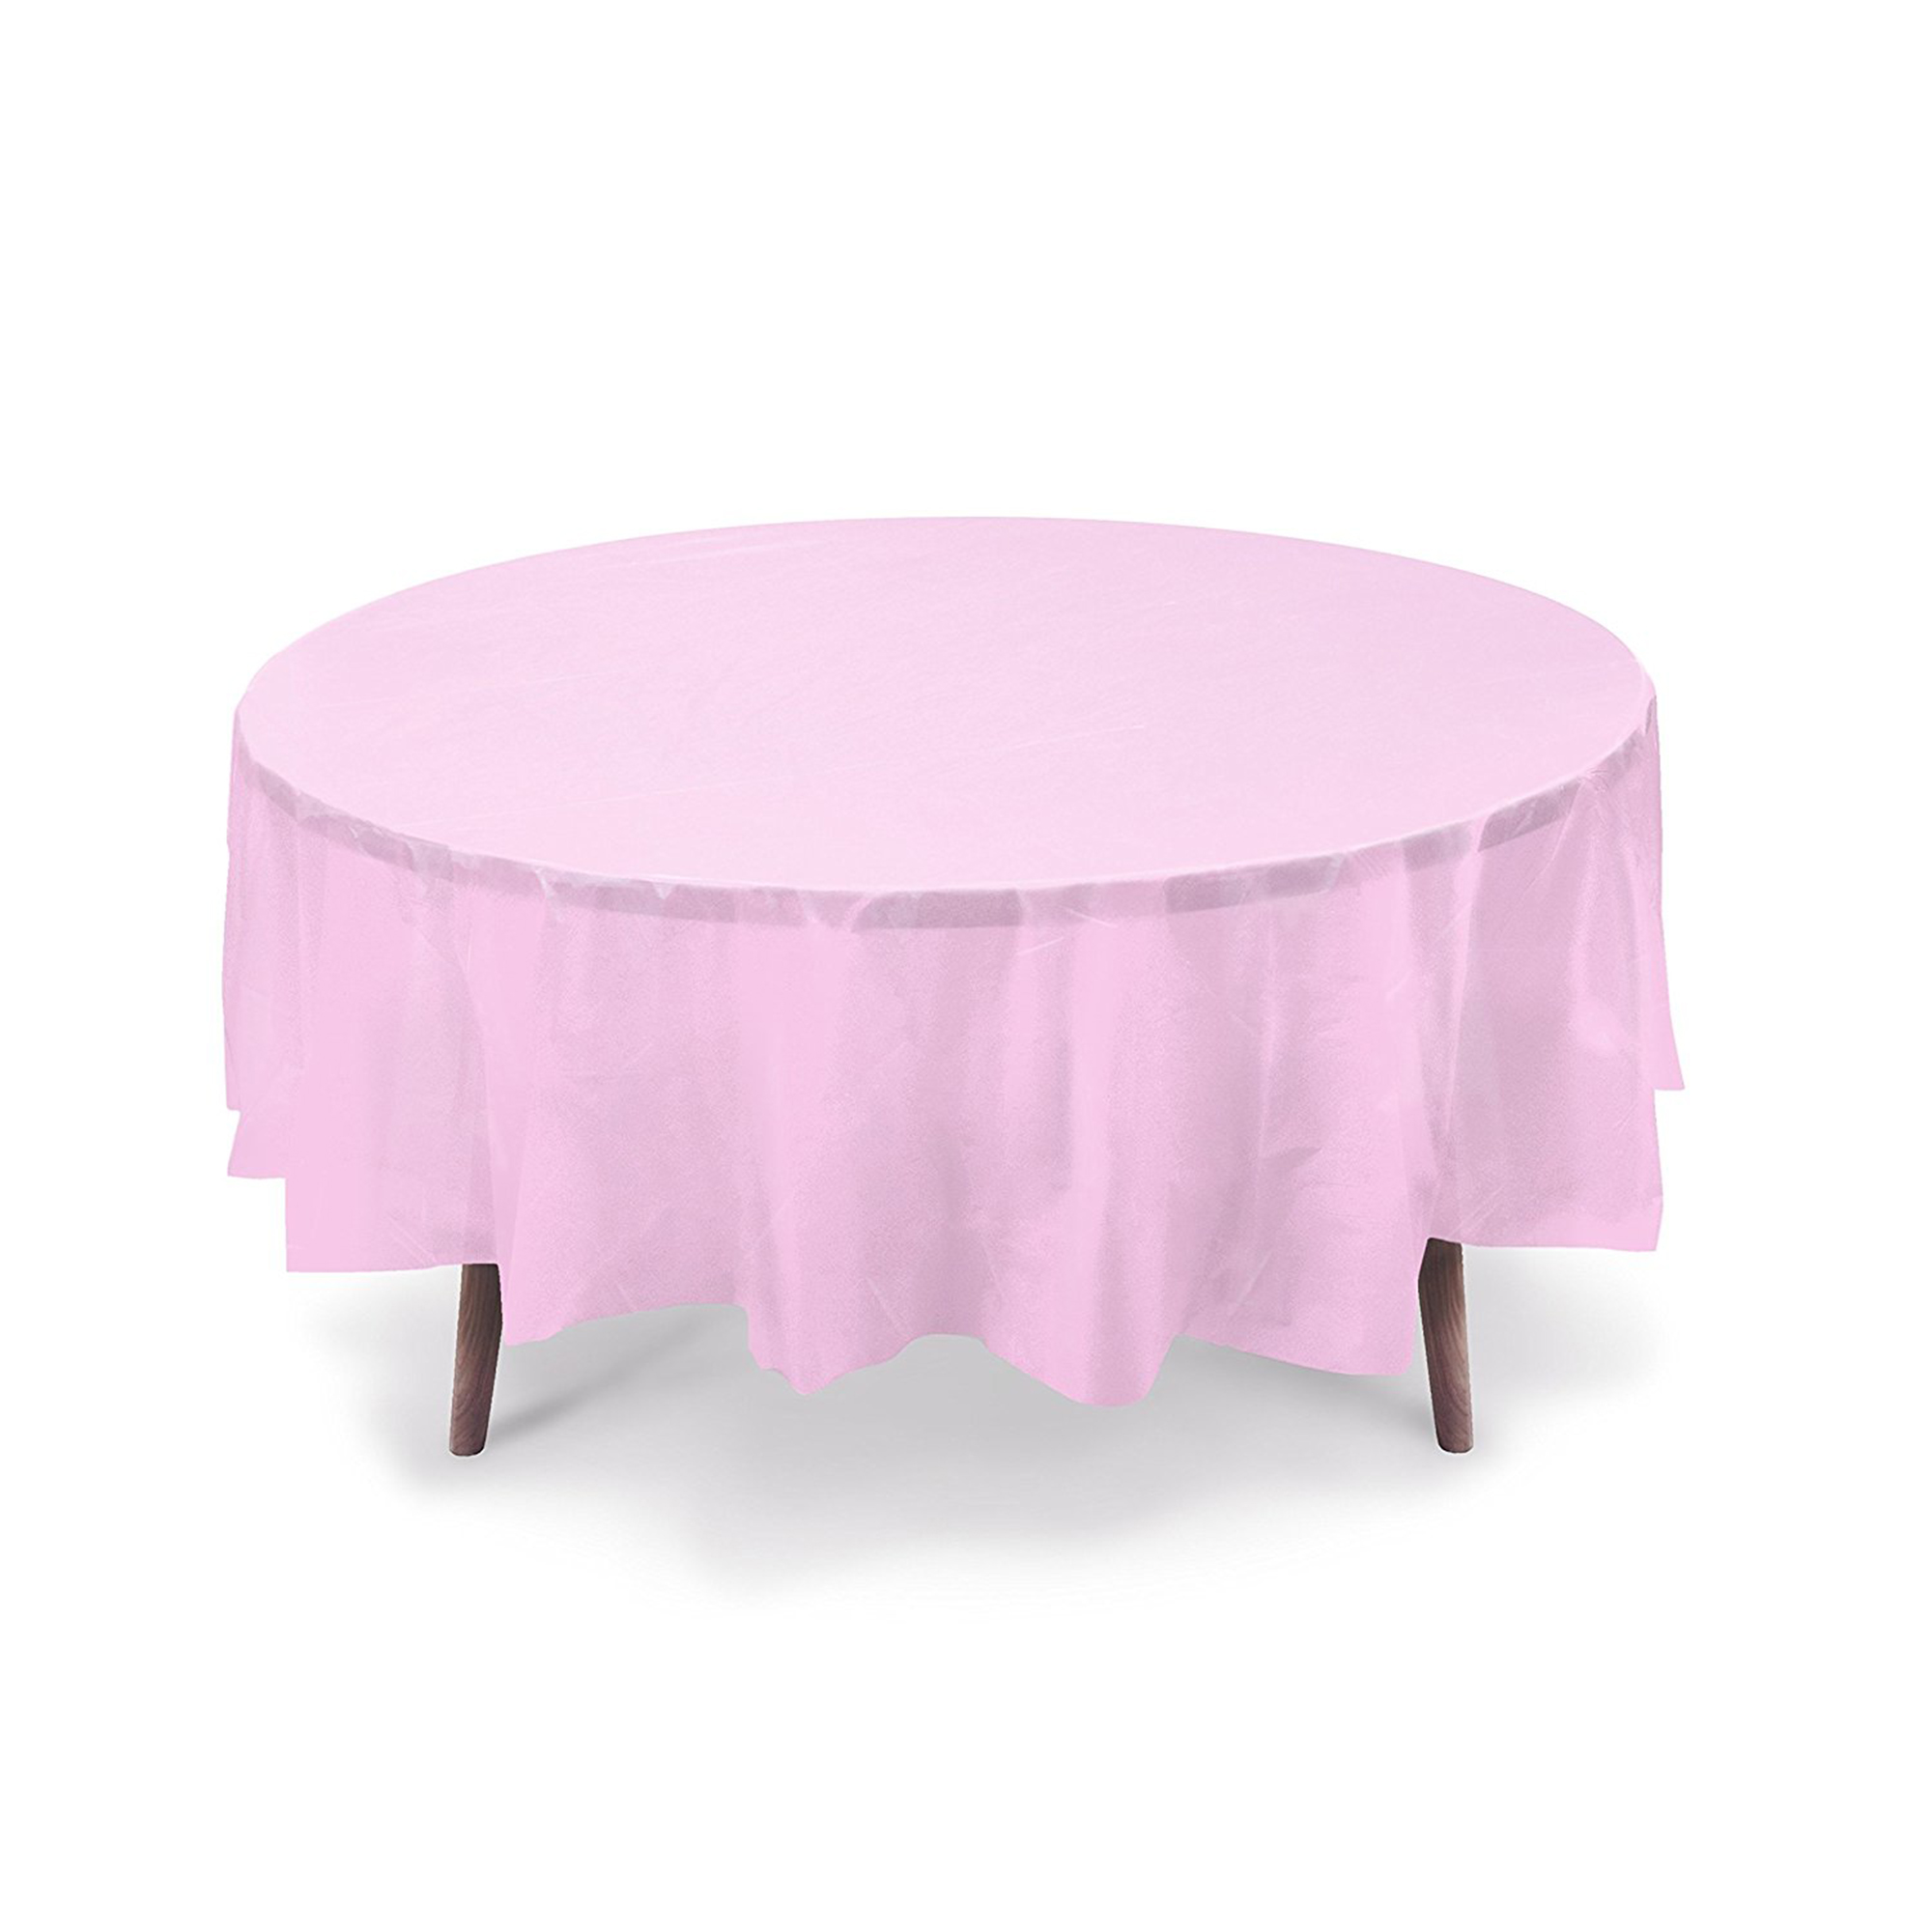 Pink Round Table.84 Light Pink Round Plastic Table Cover Party Table Cover Reusable Peva Light Pink